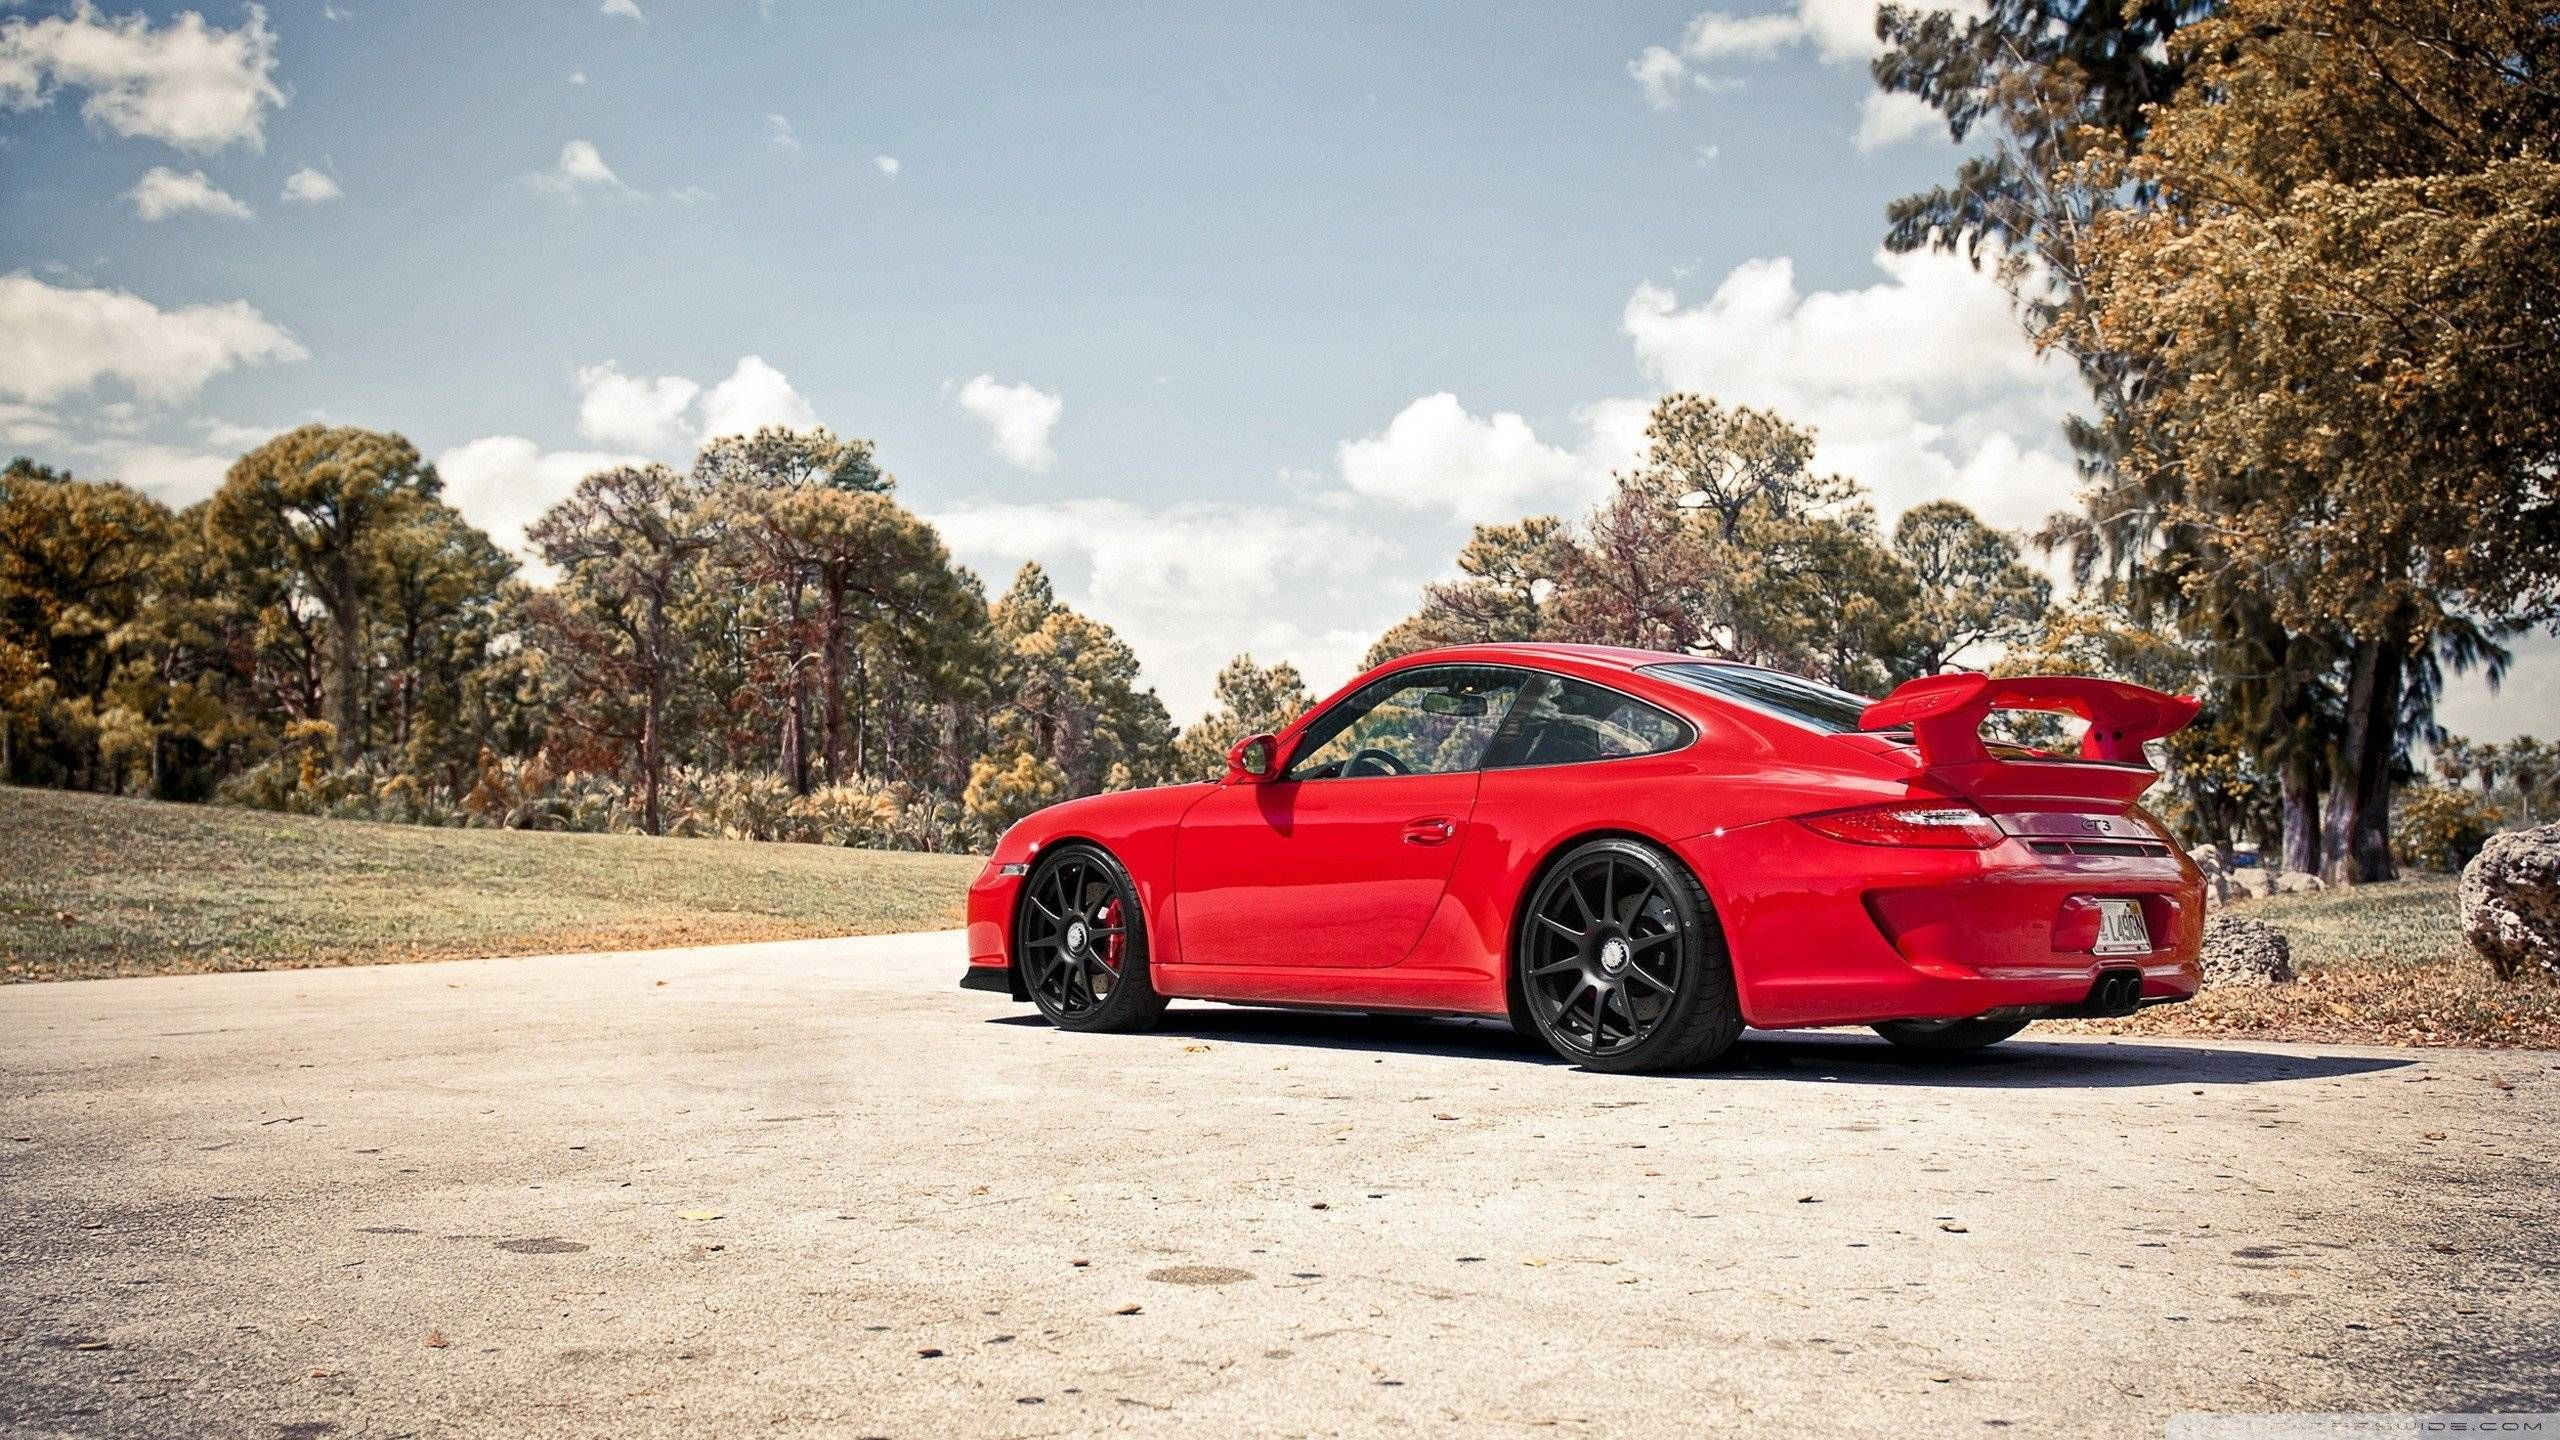 10 Awesome Facts About The Porsche 911 GT3 | HotCars